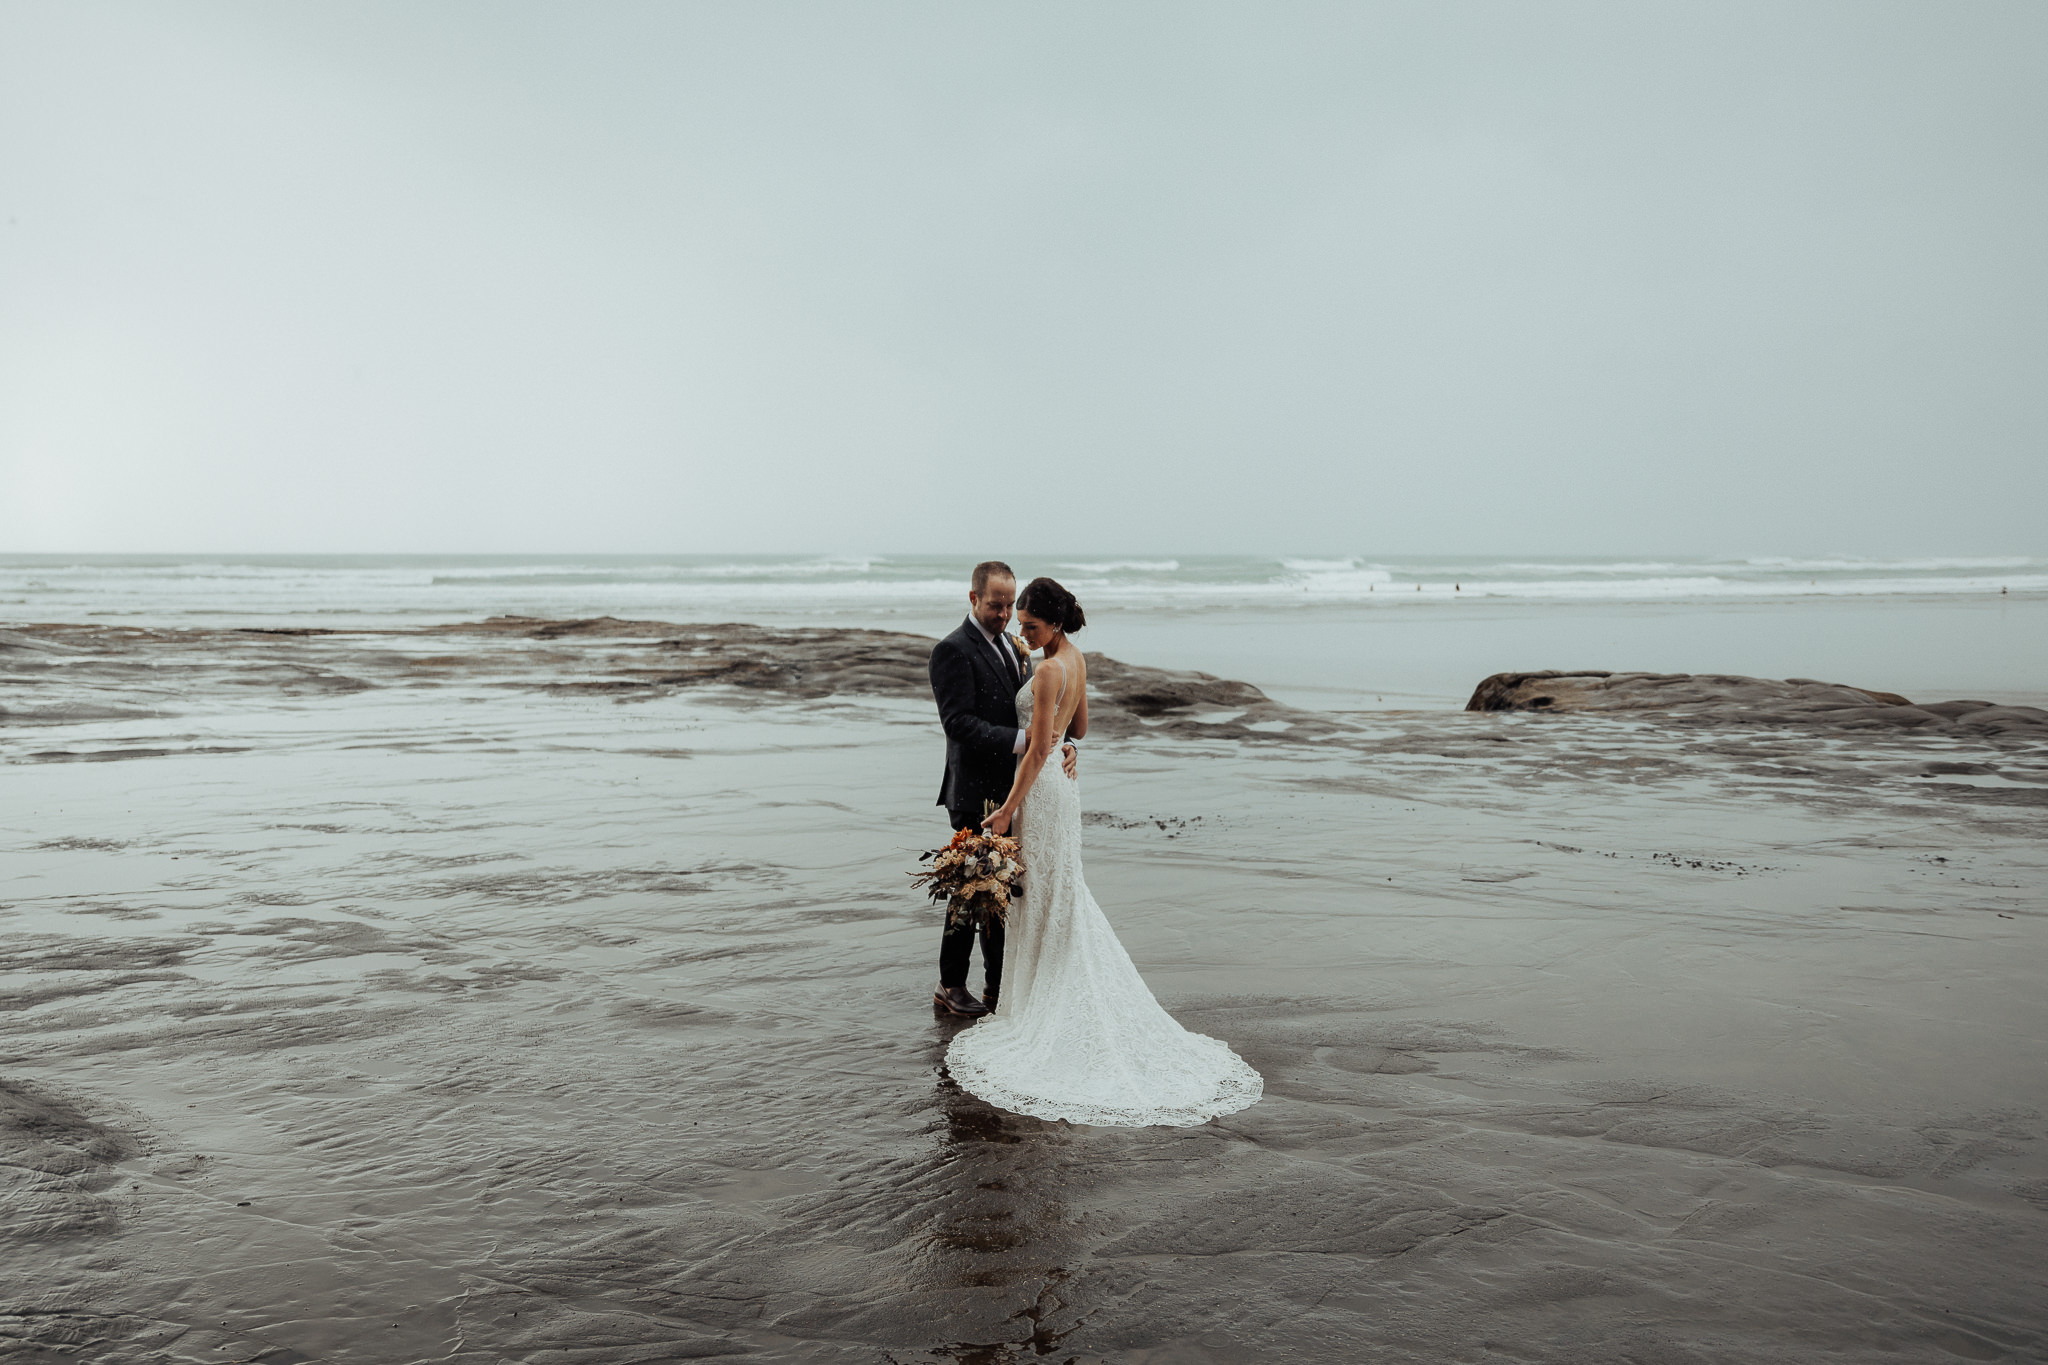 Categories: Weddings-Real Wedding: Rose & Adrian - Photography by Hollow & Co